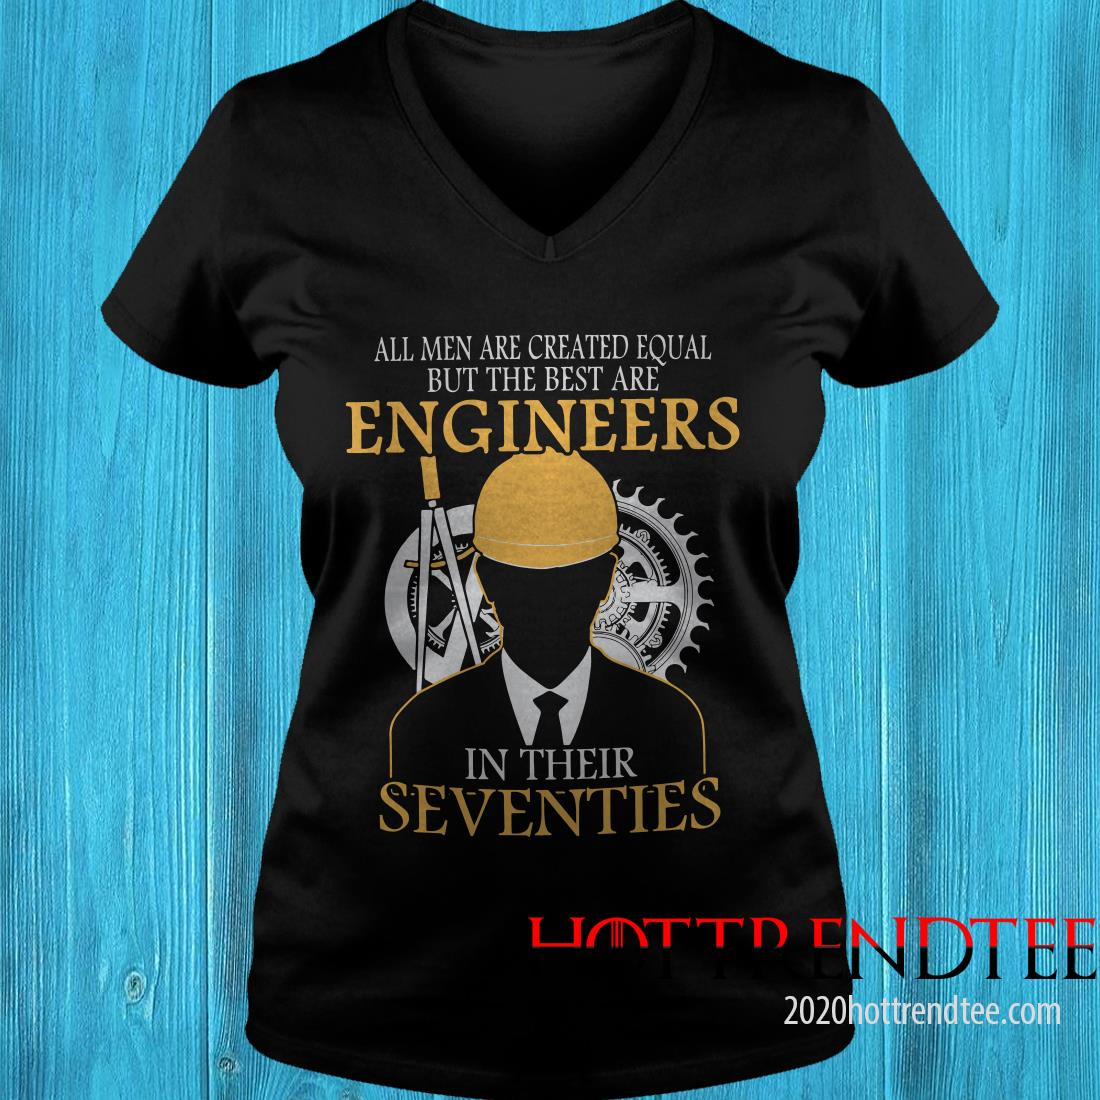 All Men Are Created Equal But The Best Are Engineers In Their Seventies Women's T-Shirt